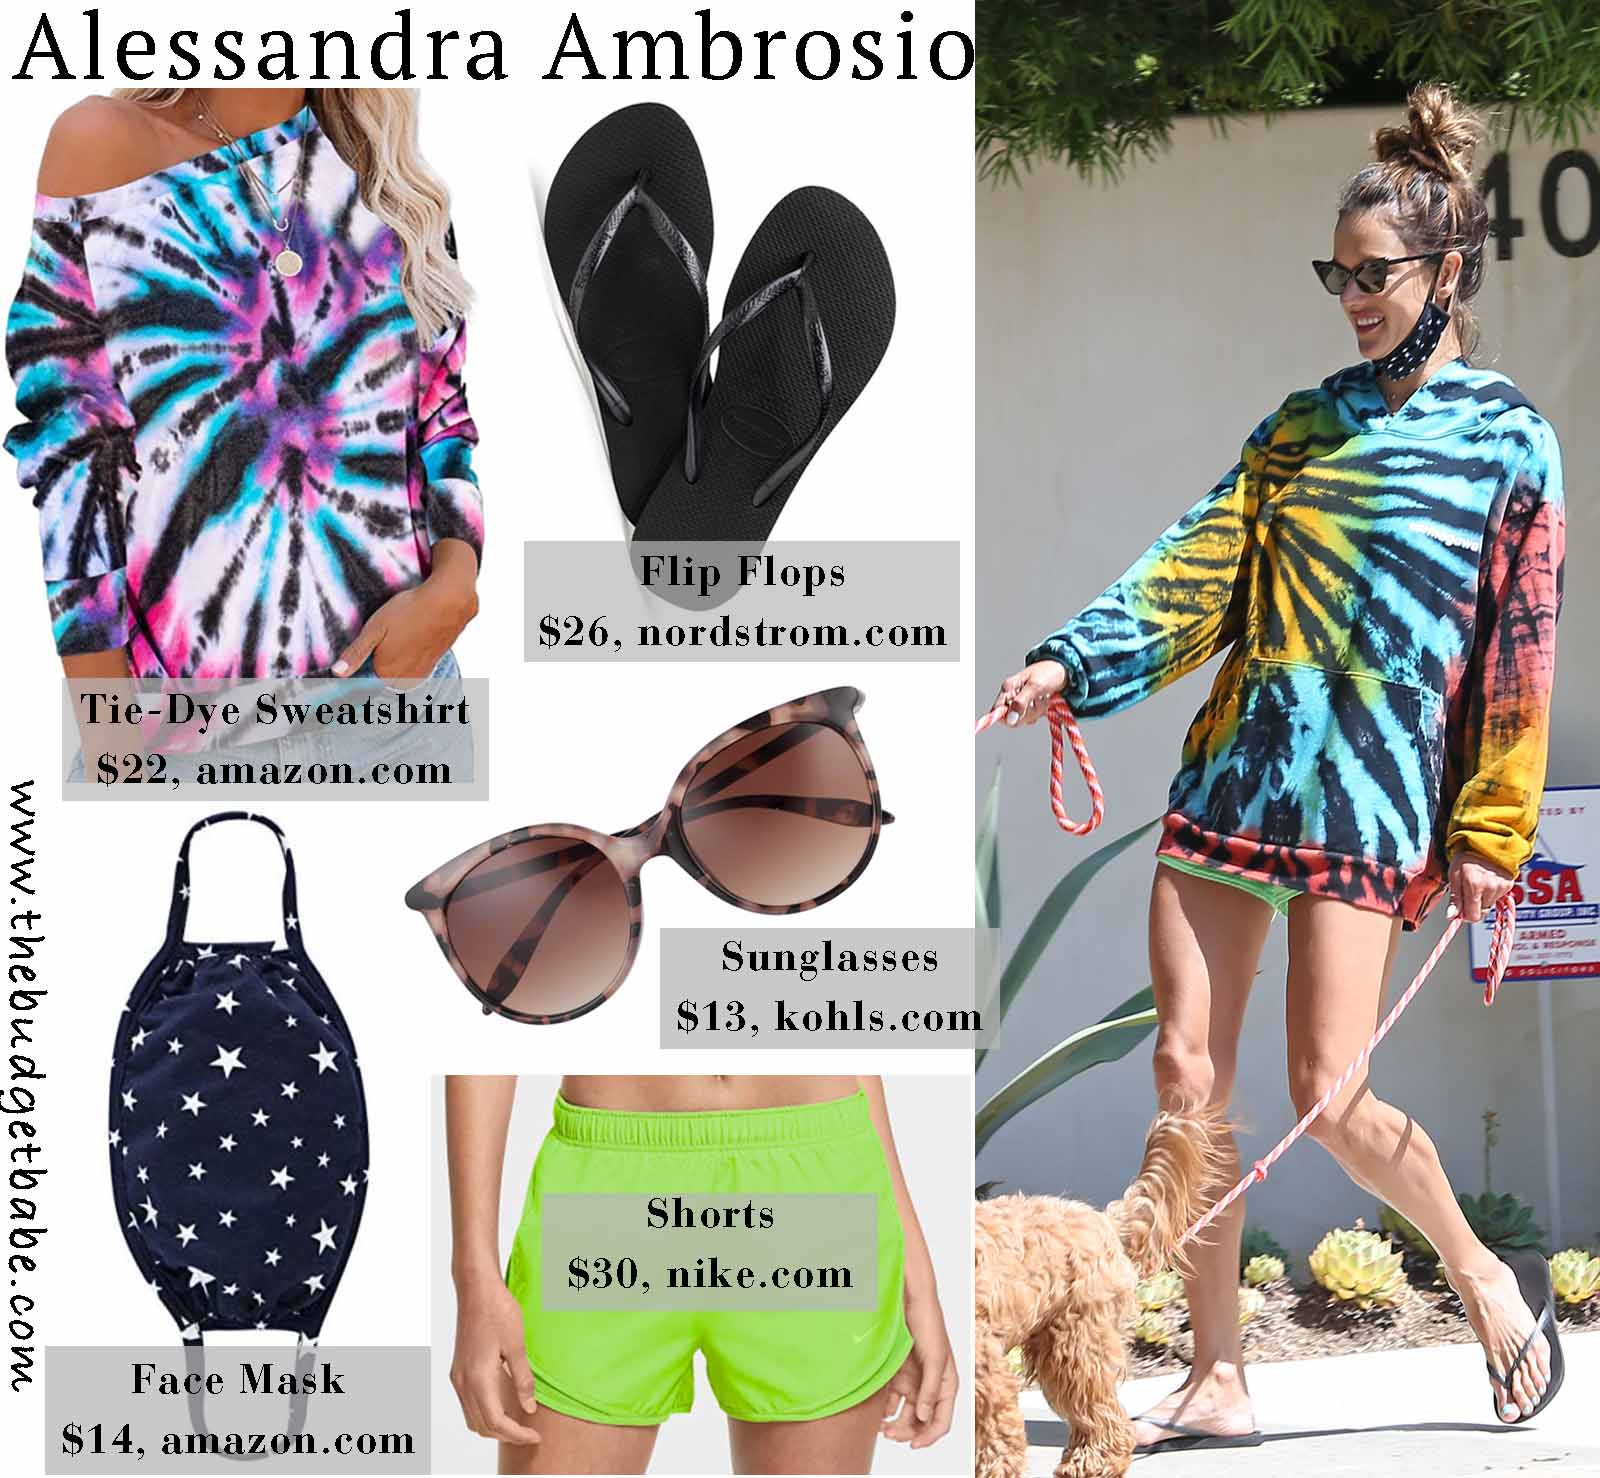 Alessandra's tie-dye hoodie is so cute!